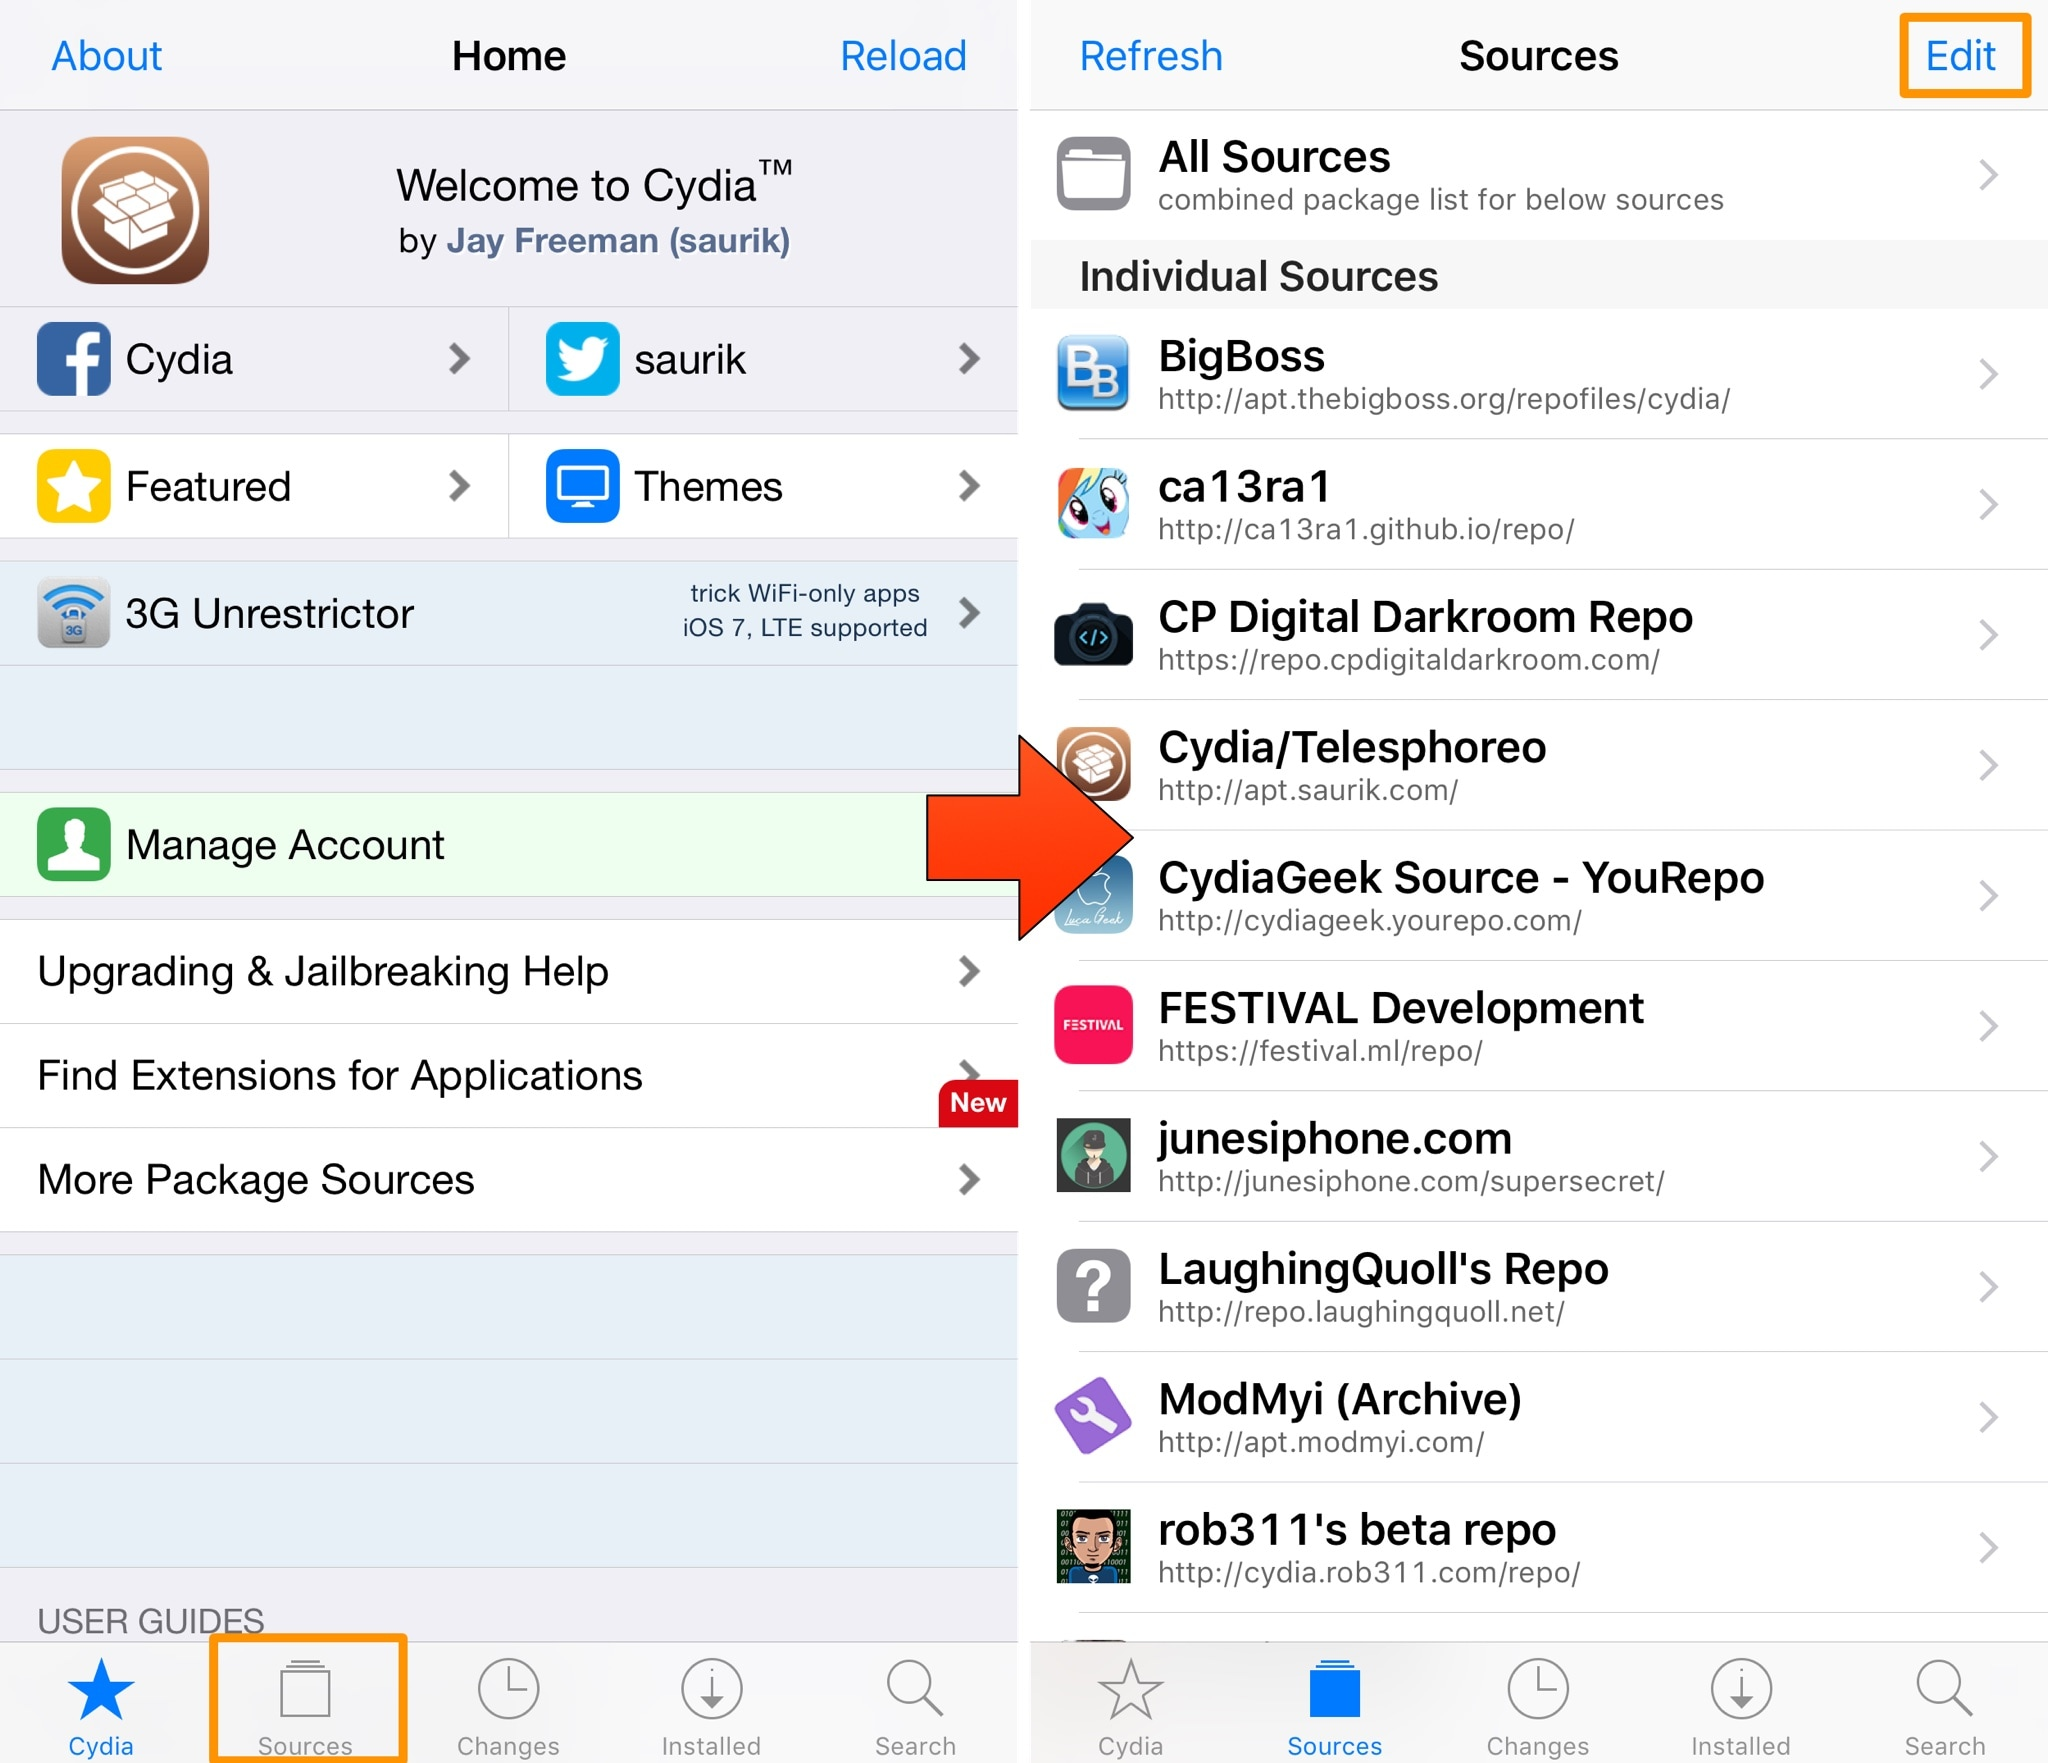 cydia sources